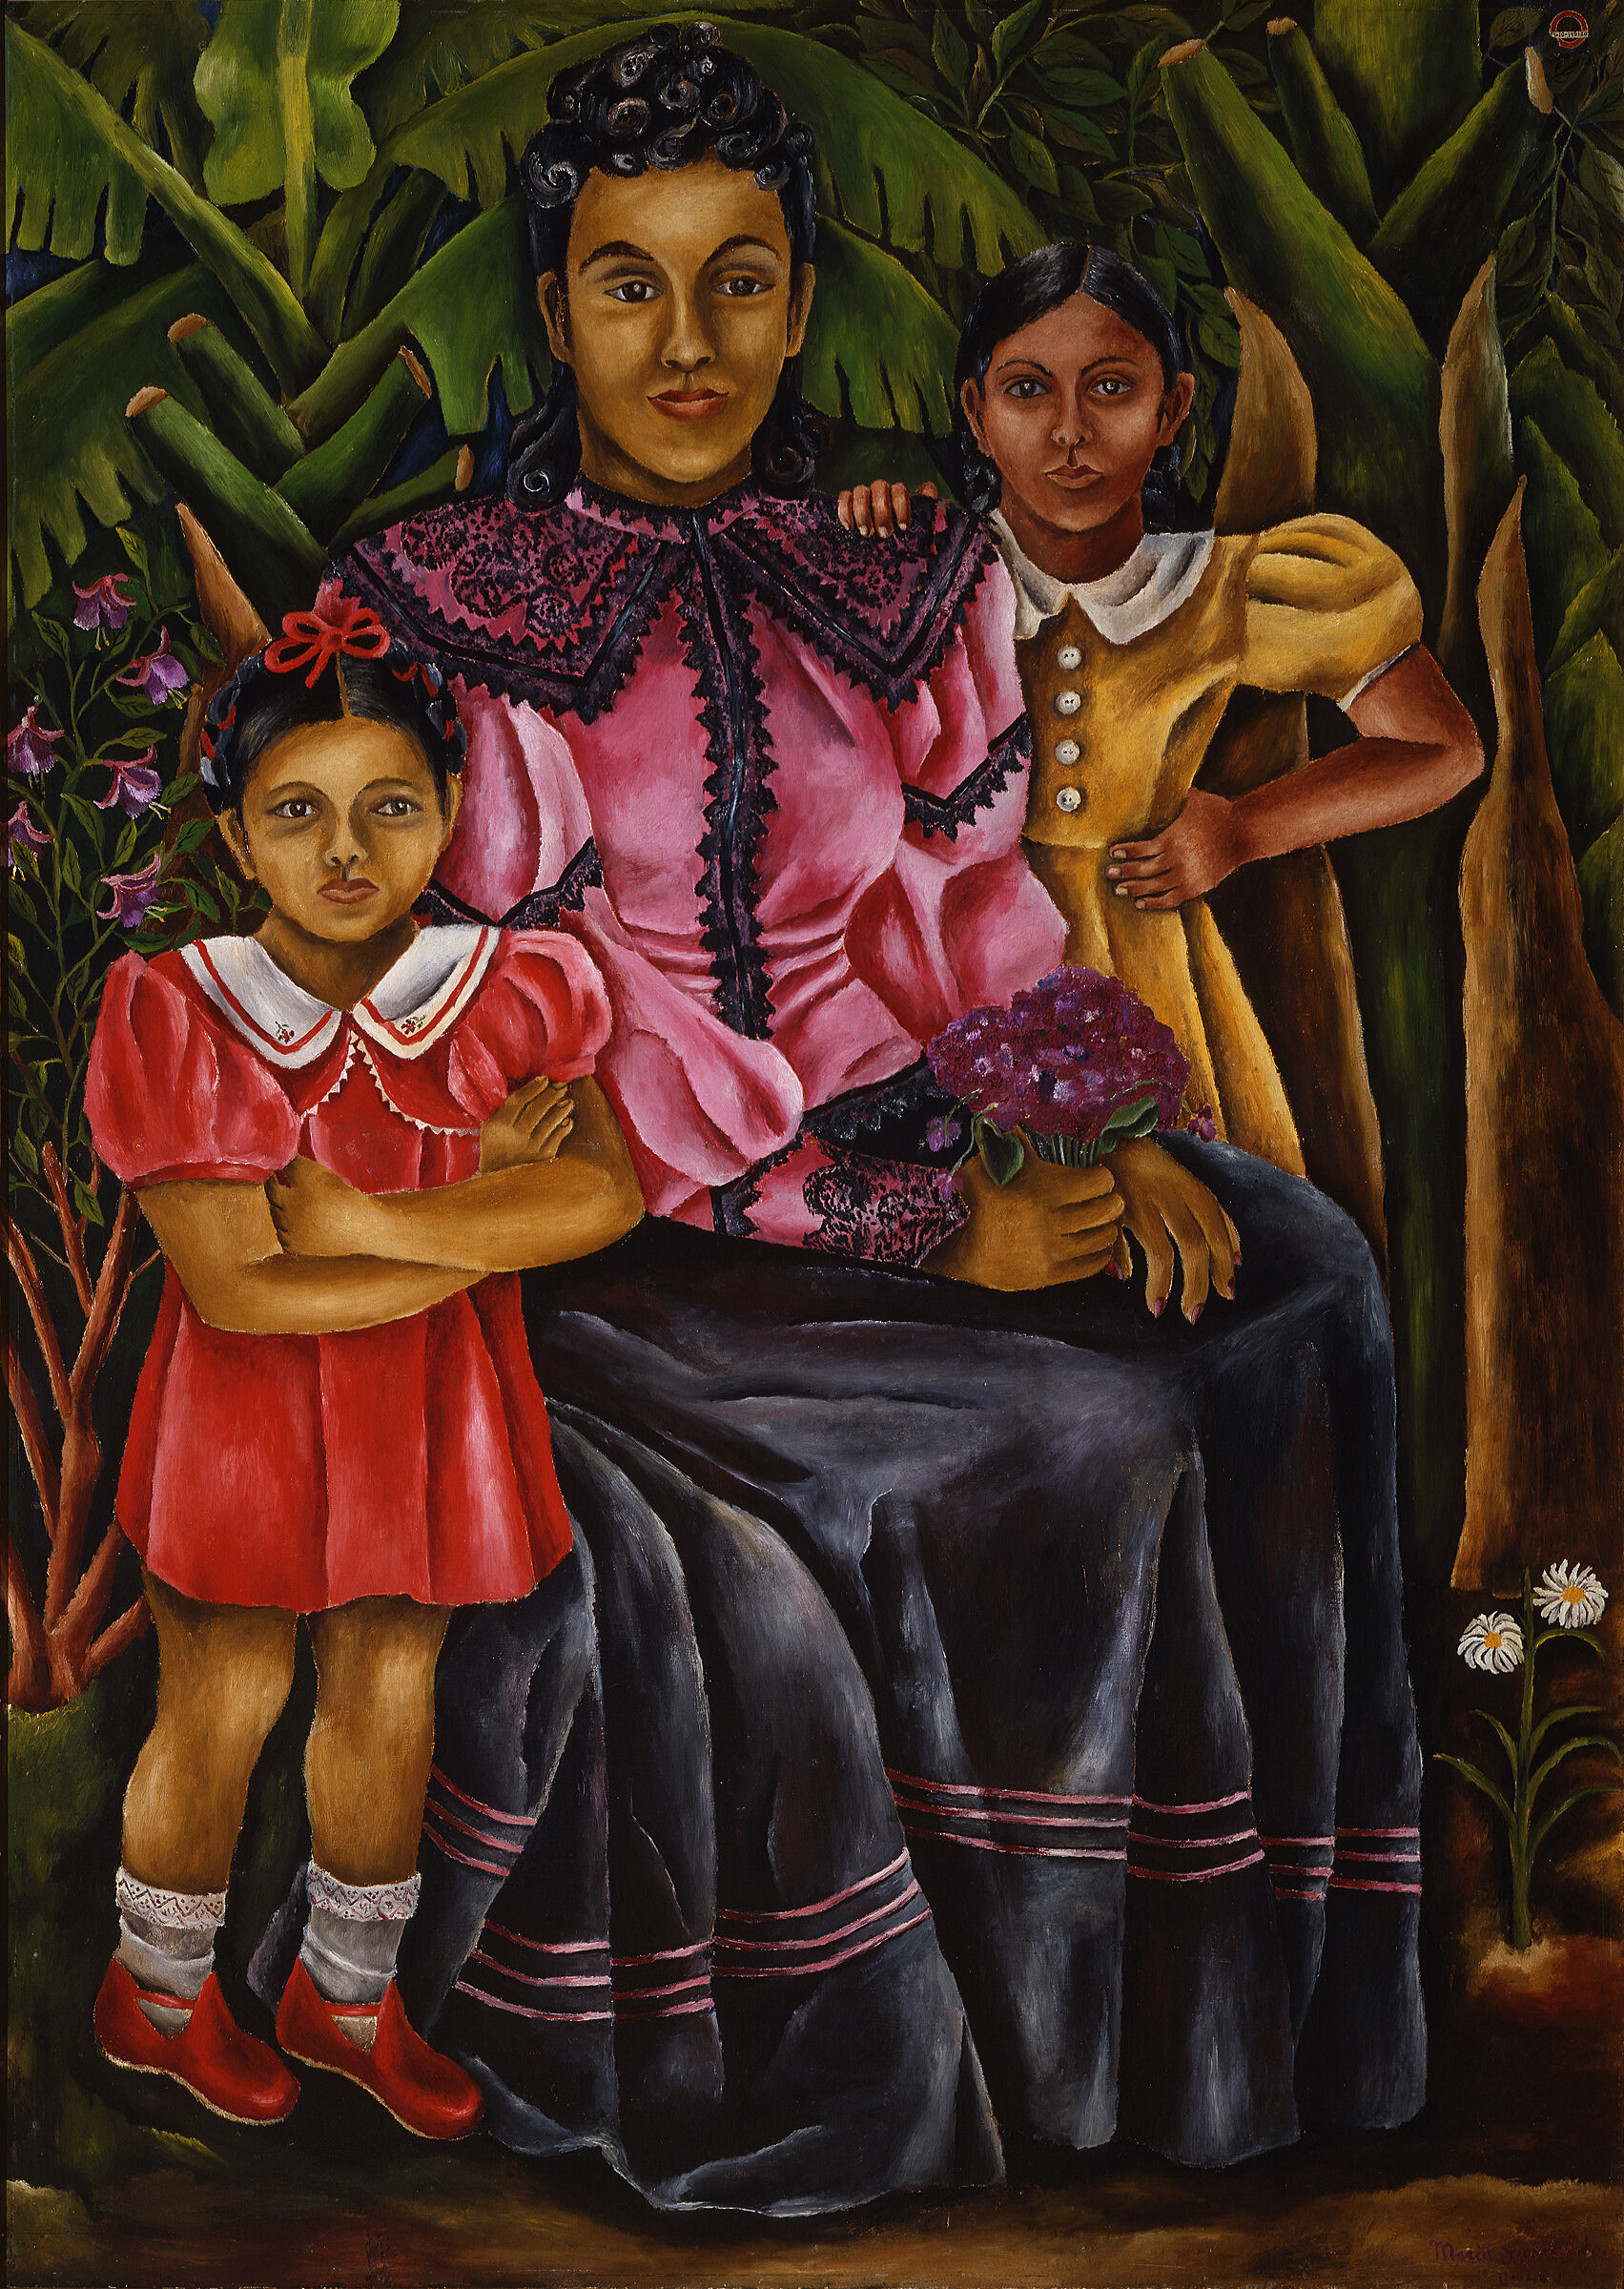 A painting of a woman with two small children.